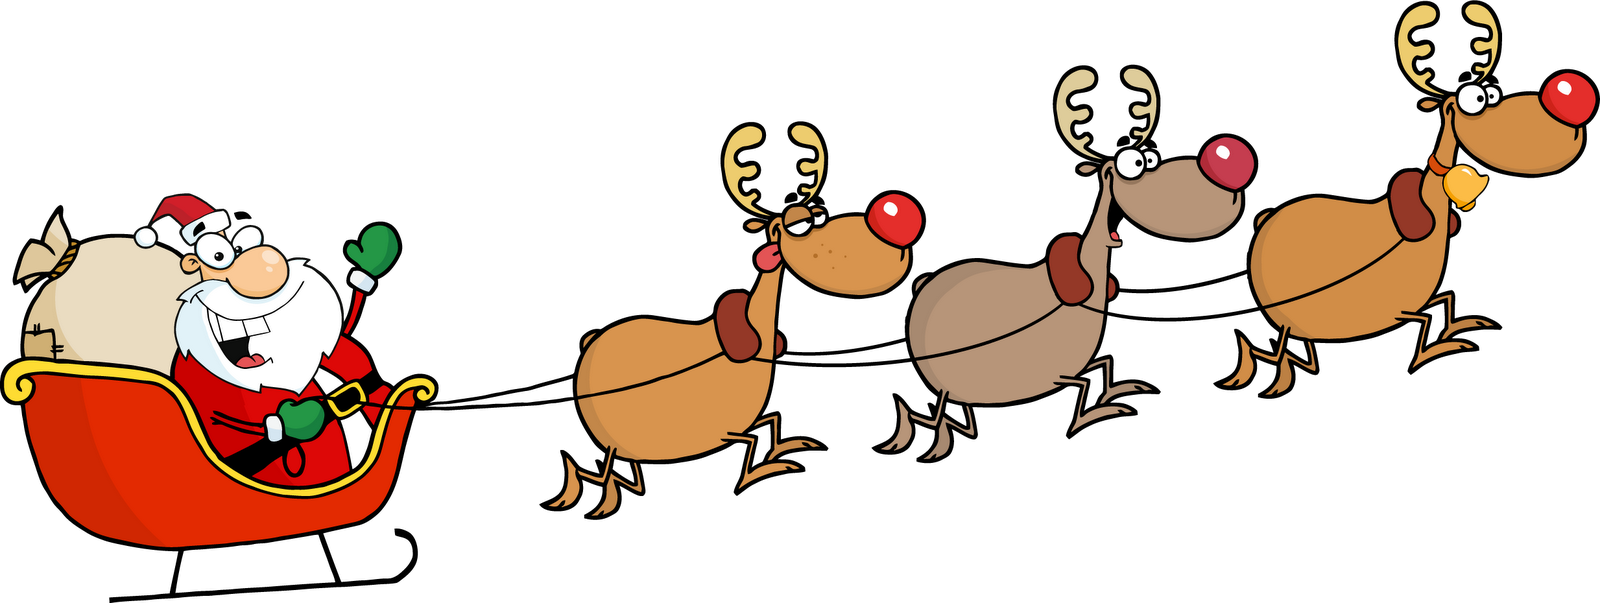 Family clipart reindeer, Family reindeer Transparent FREE.